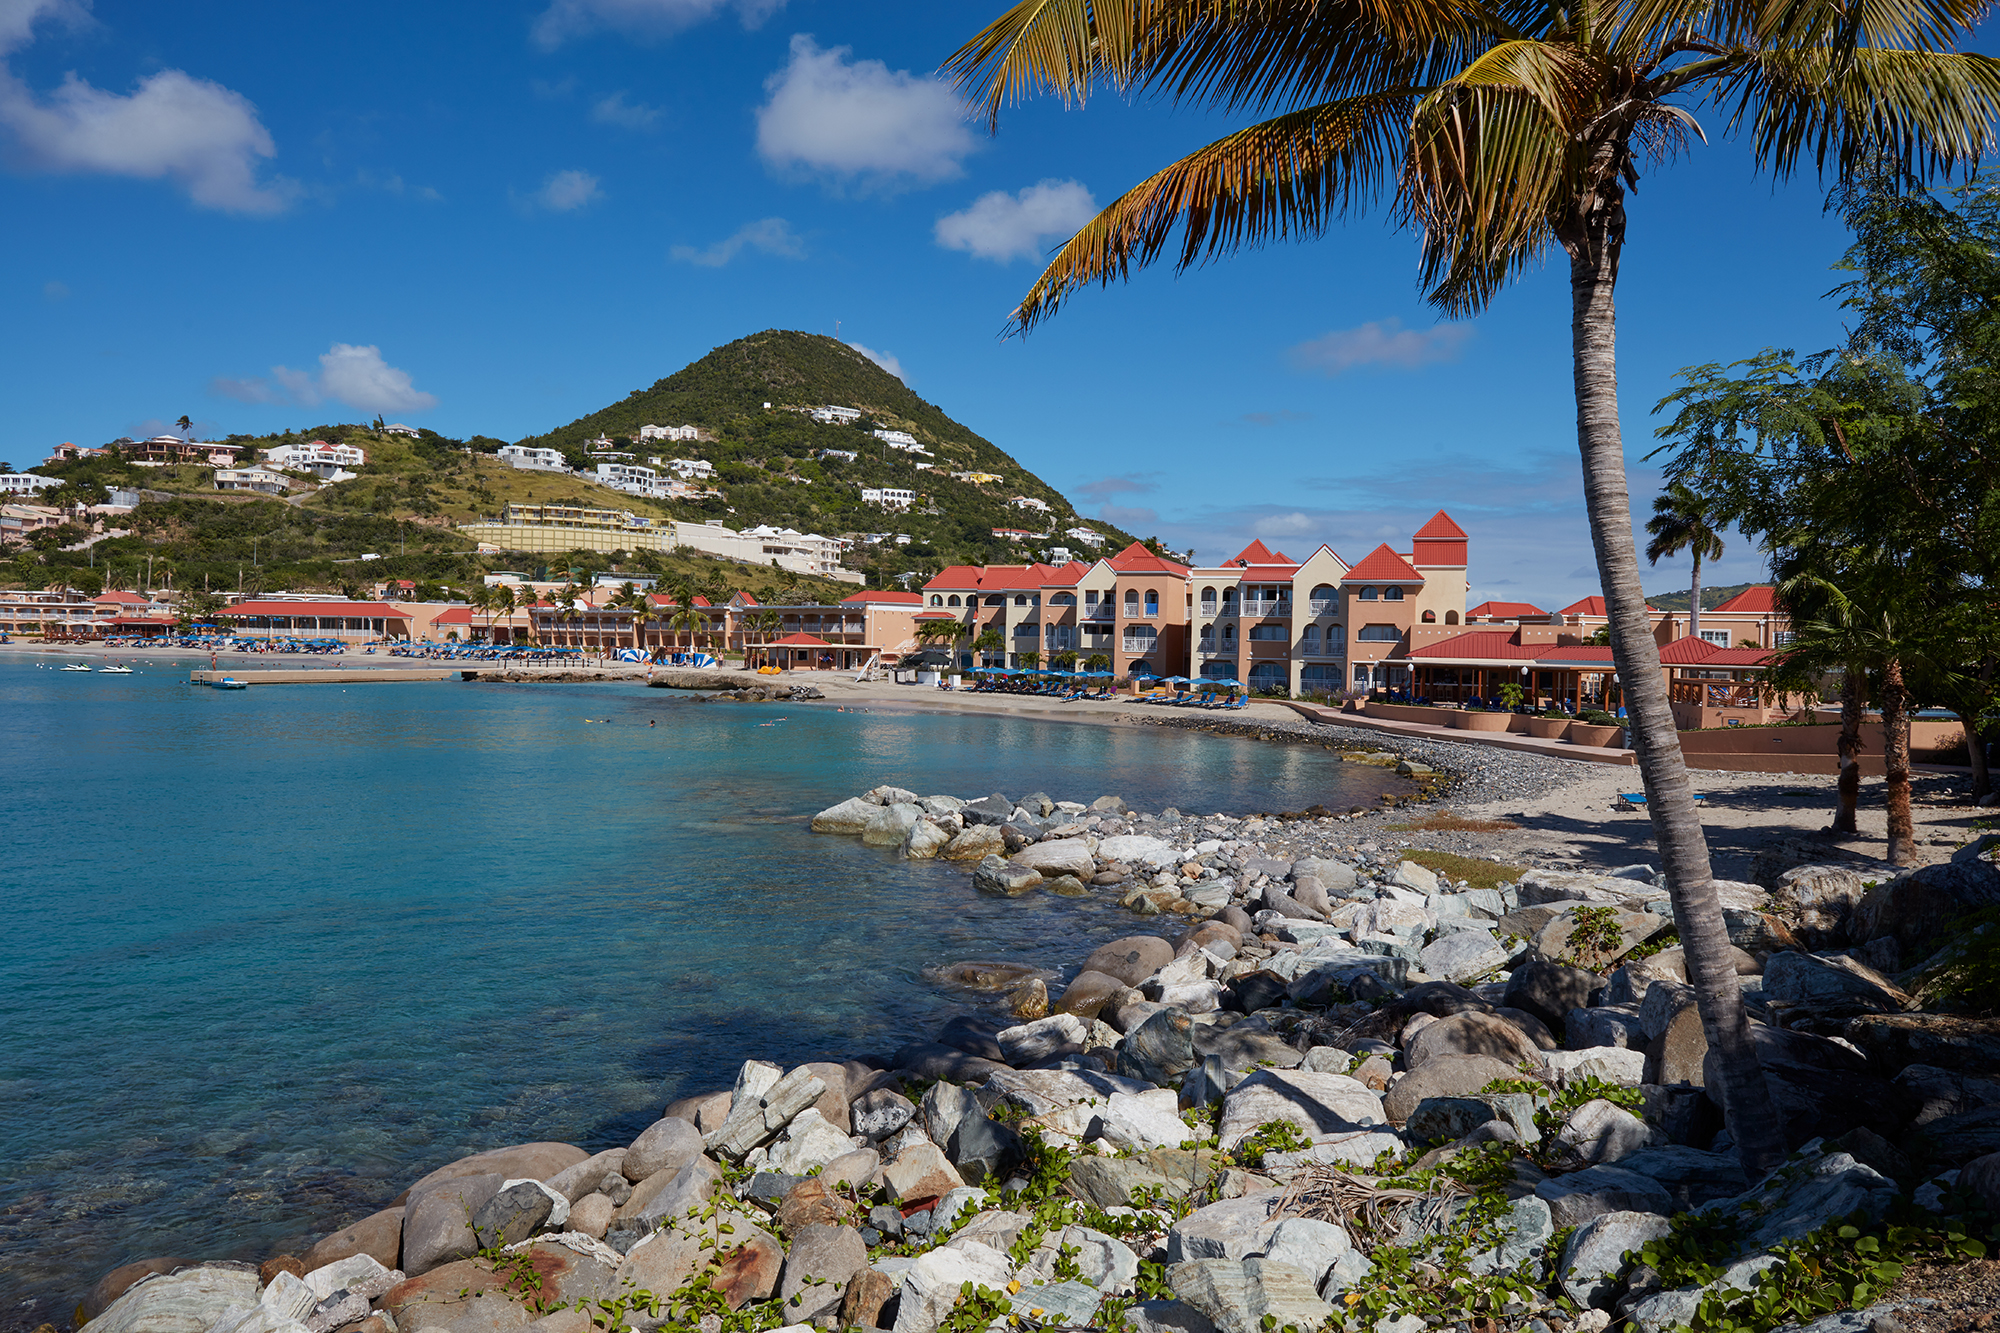 Divi Little Day Beach Resort St Maarten